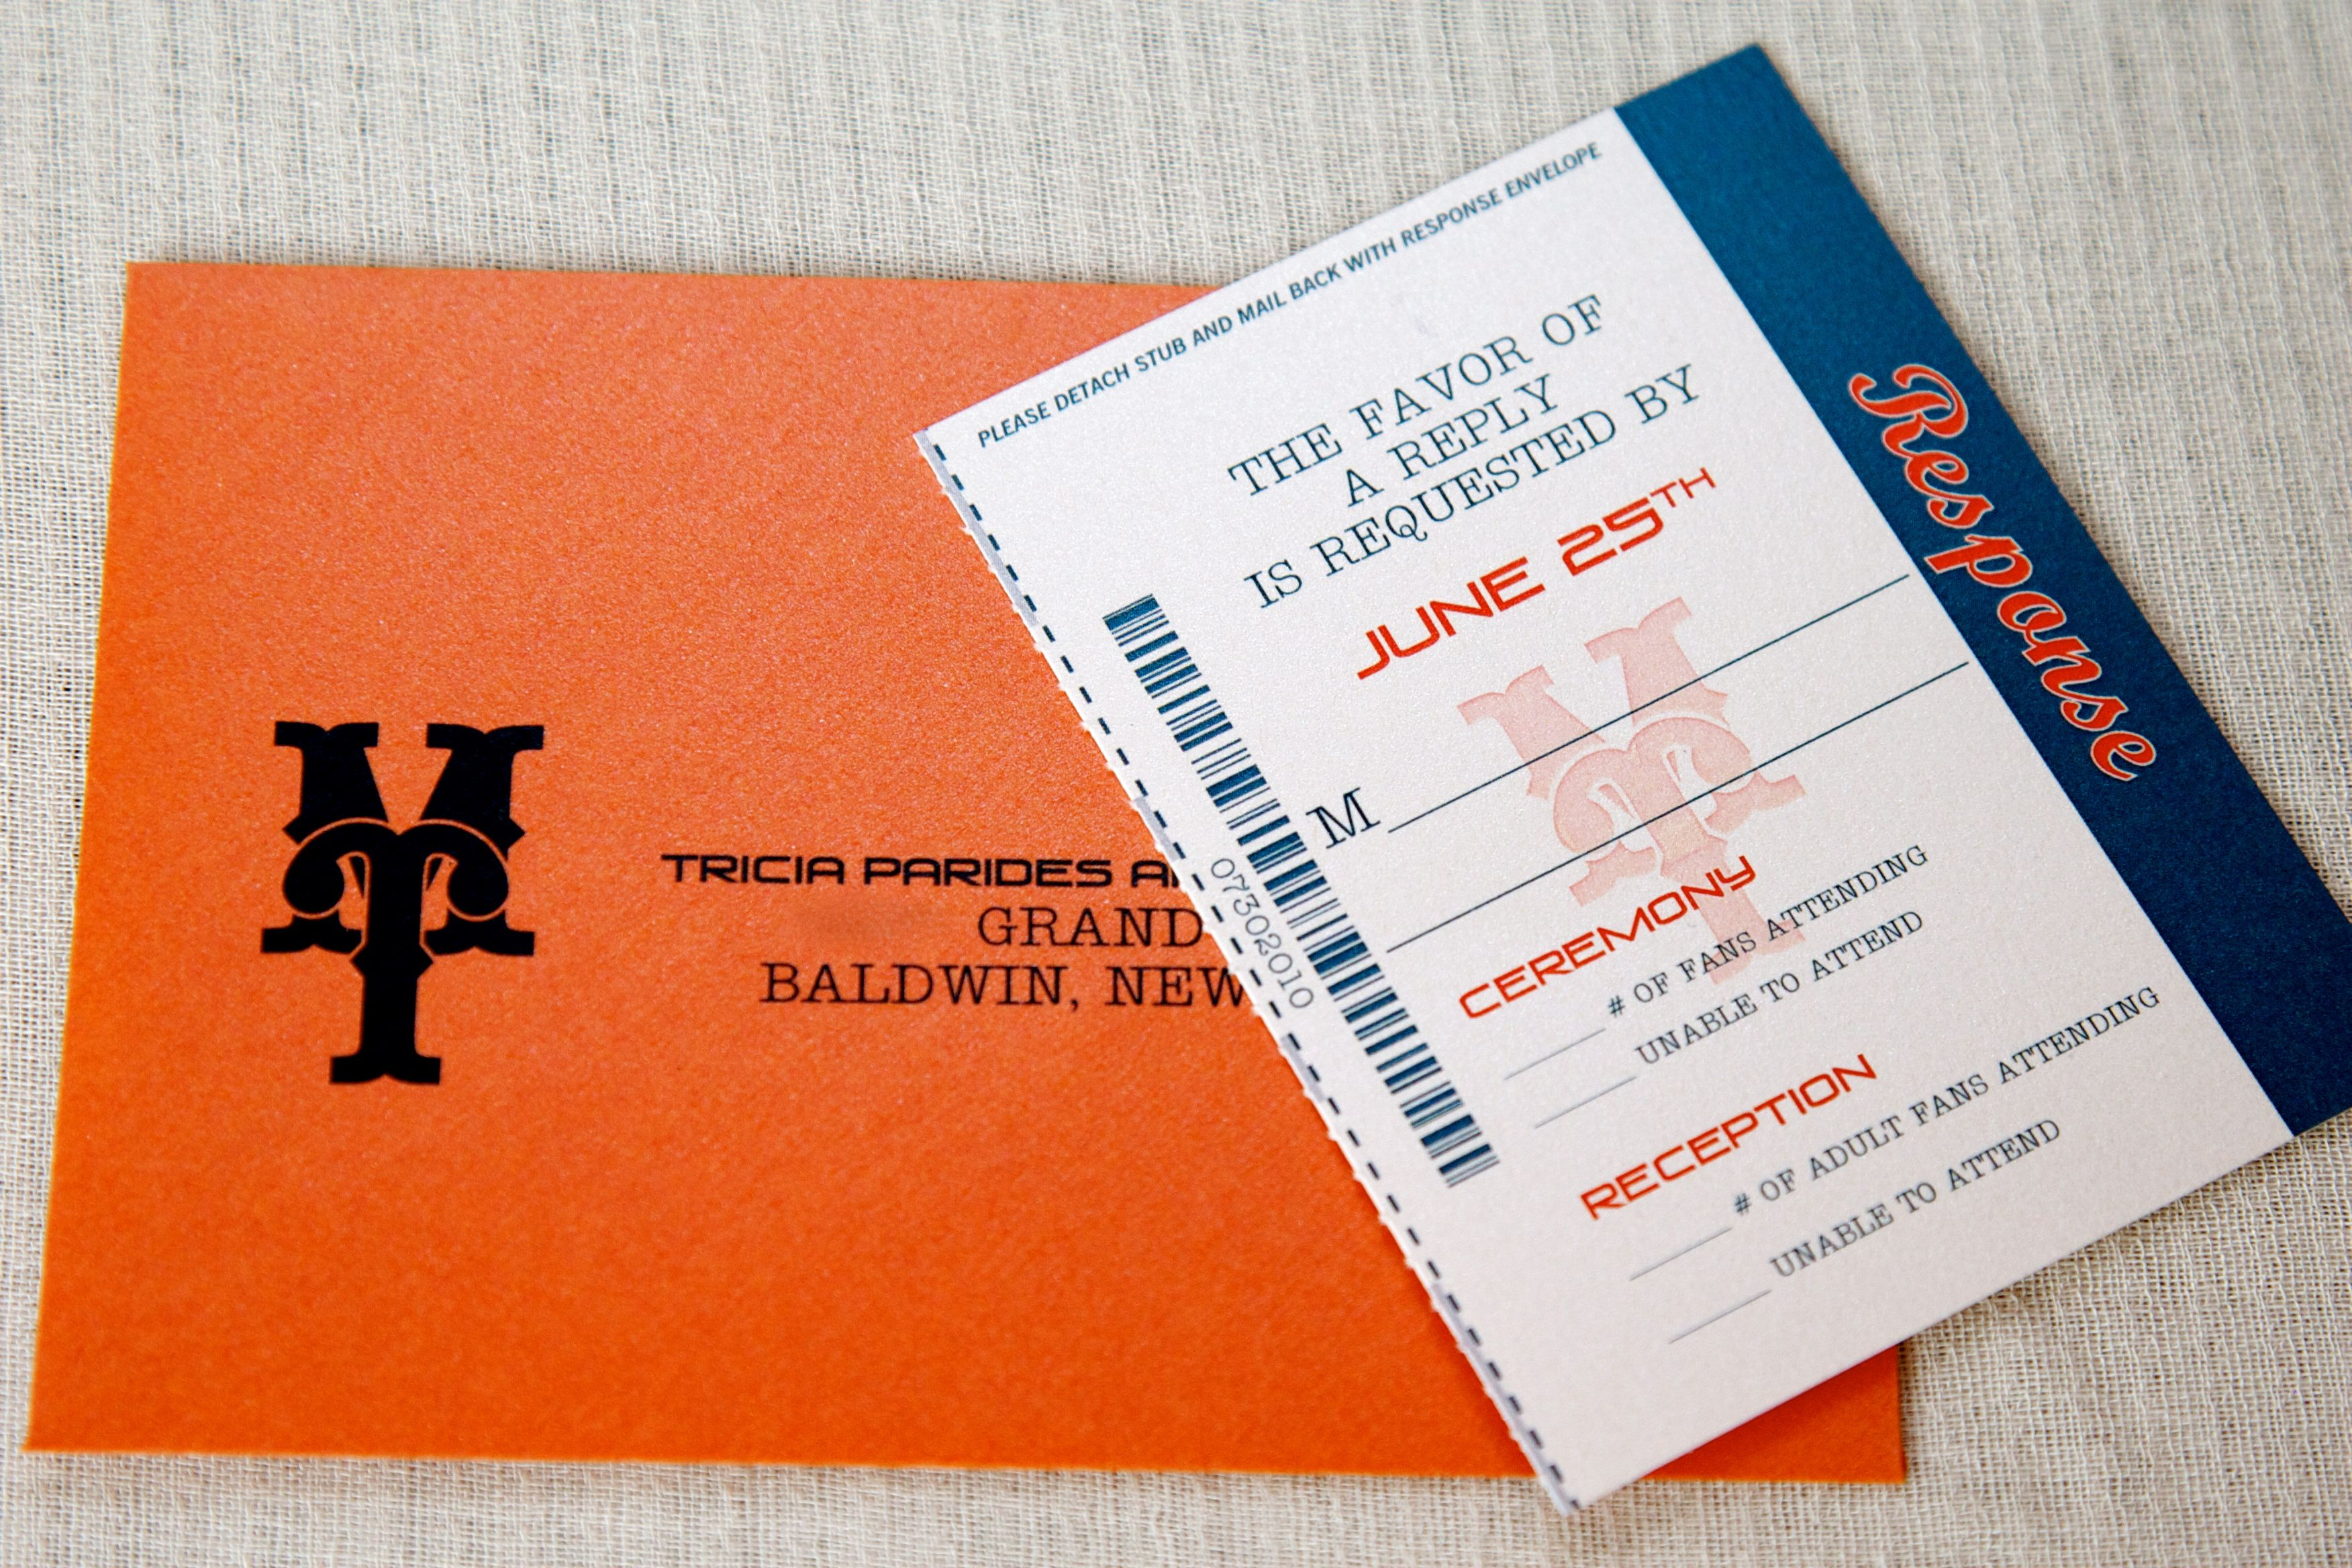 Wedding Invitations With Response Cards And Envelopes: Baseball Ticket Inspired Response